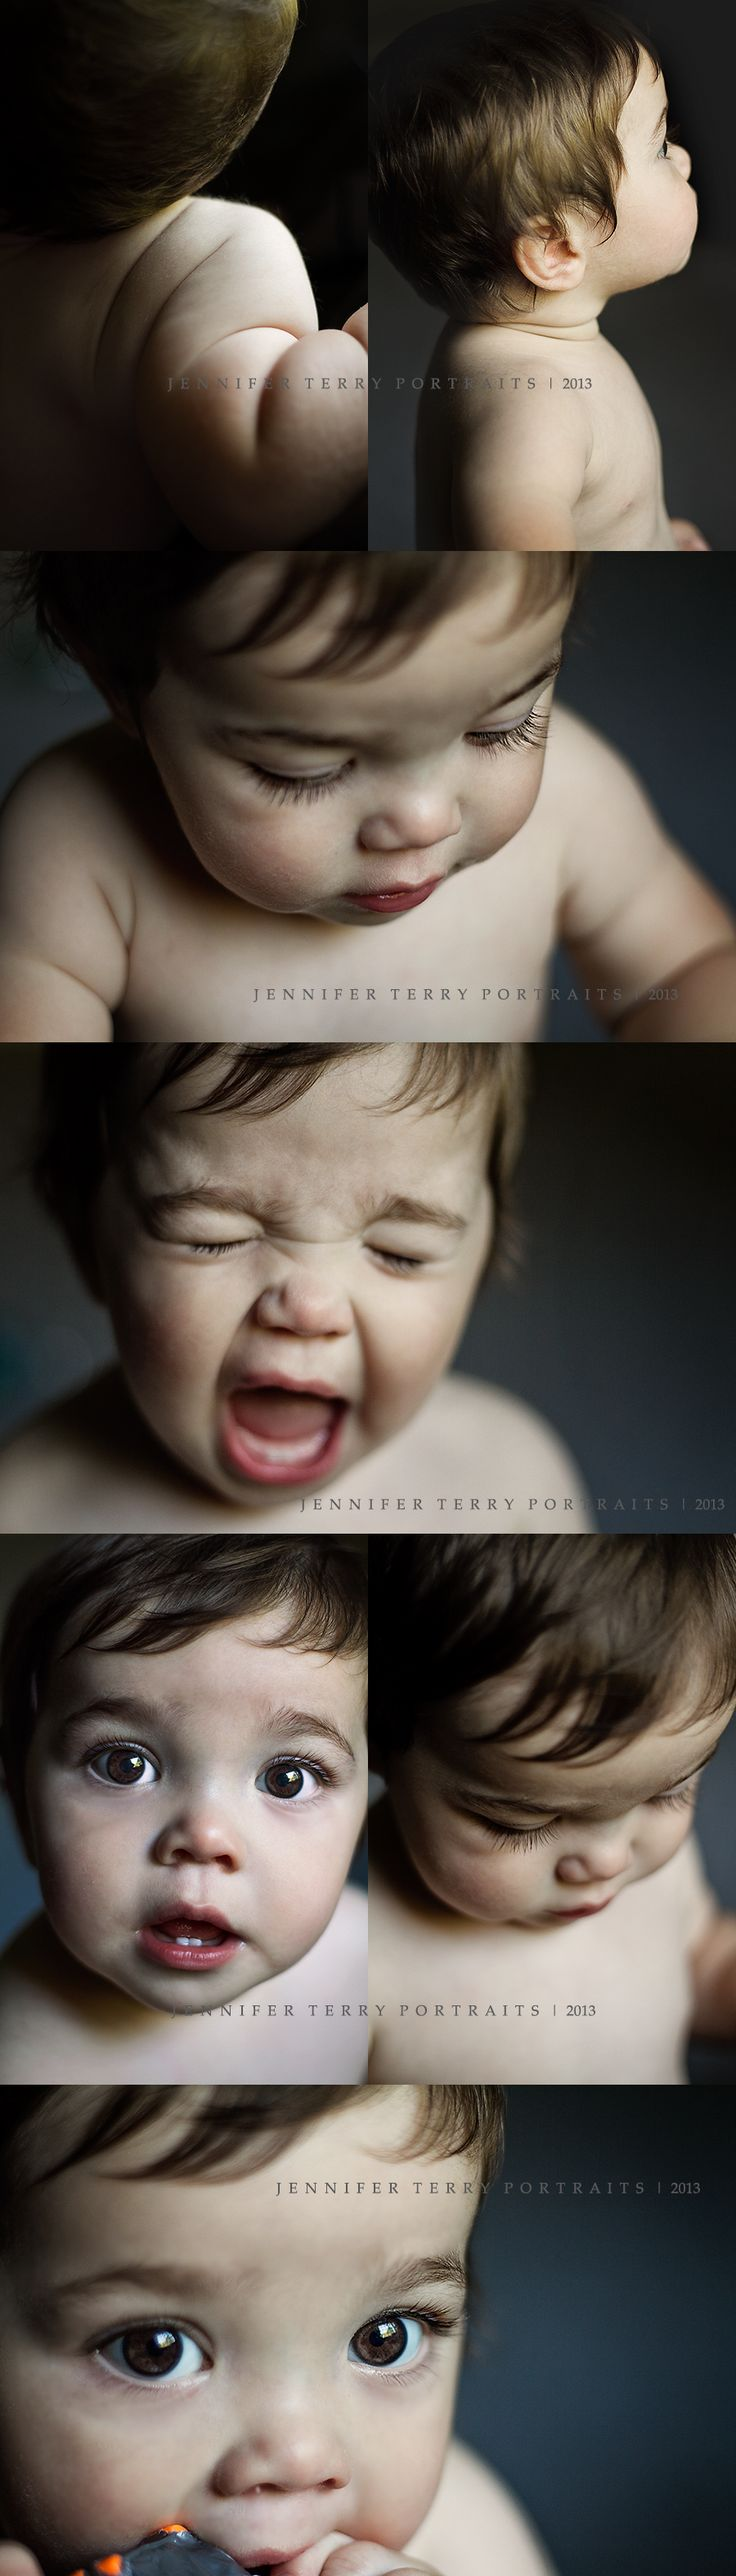 9 month old photography session. Close up and macro portrait shots. Williamsburg Newborn Photographer | Jennifer Terry Portraits